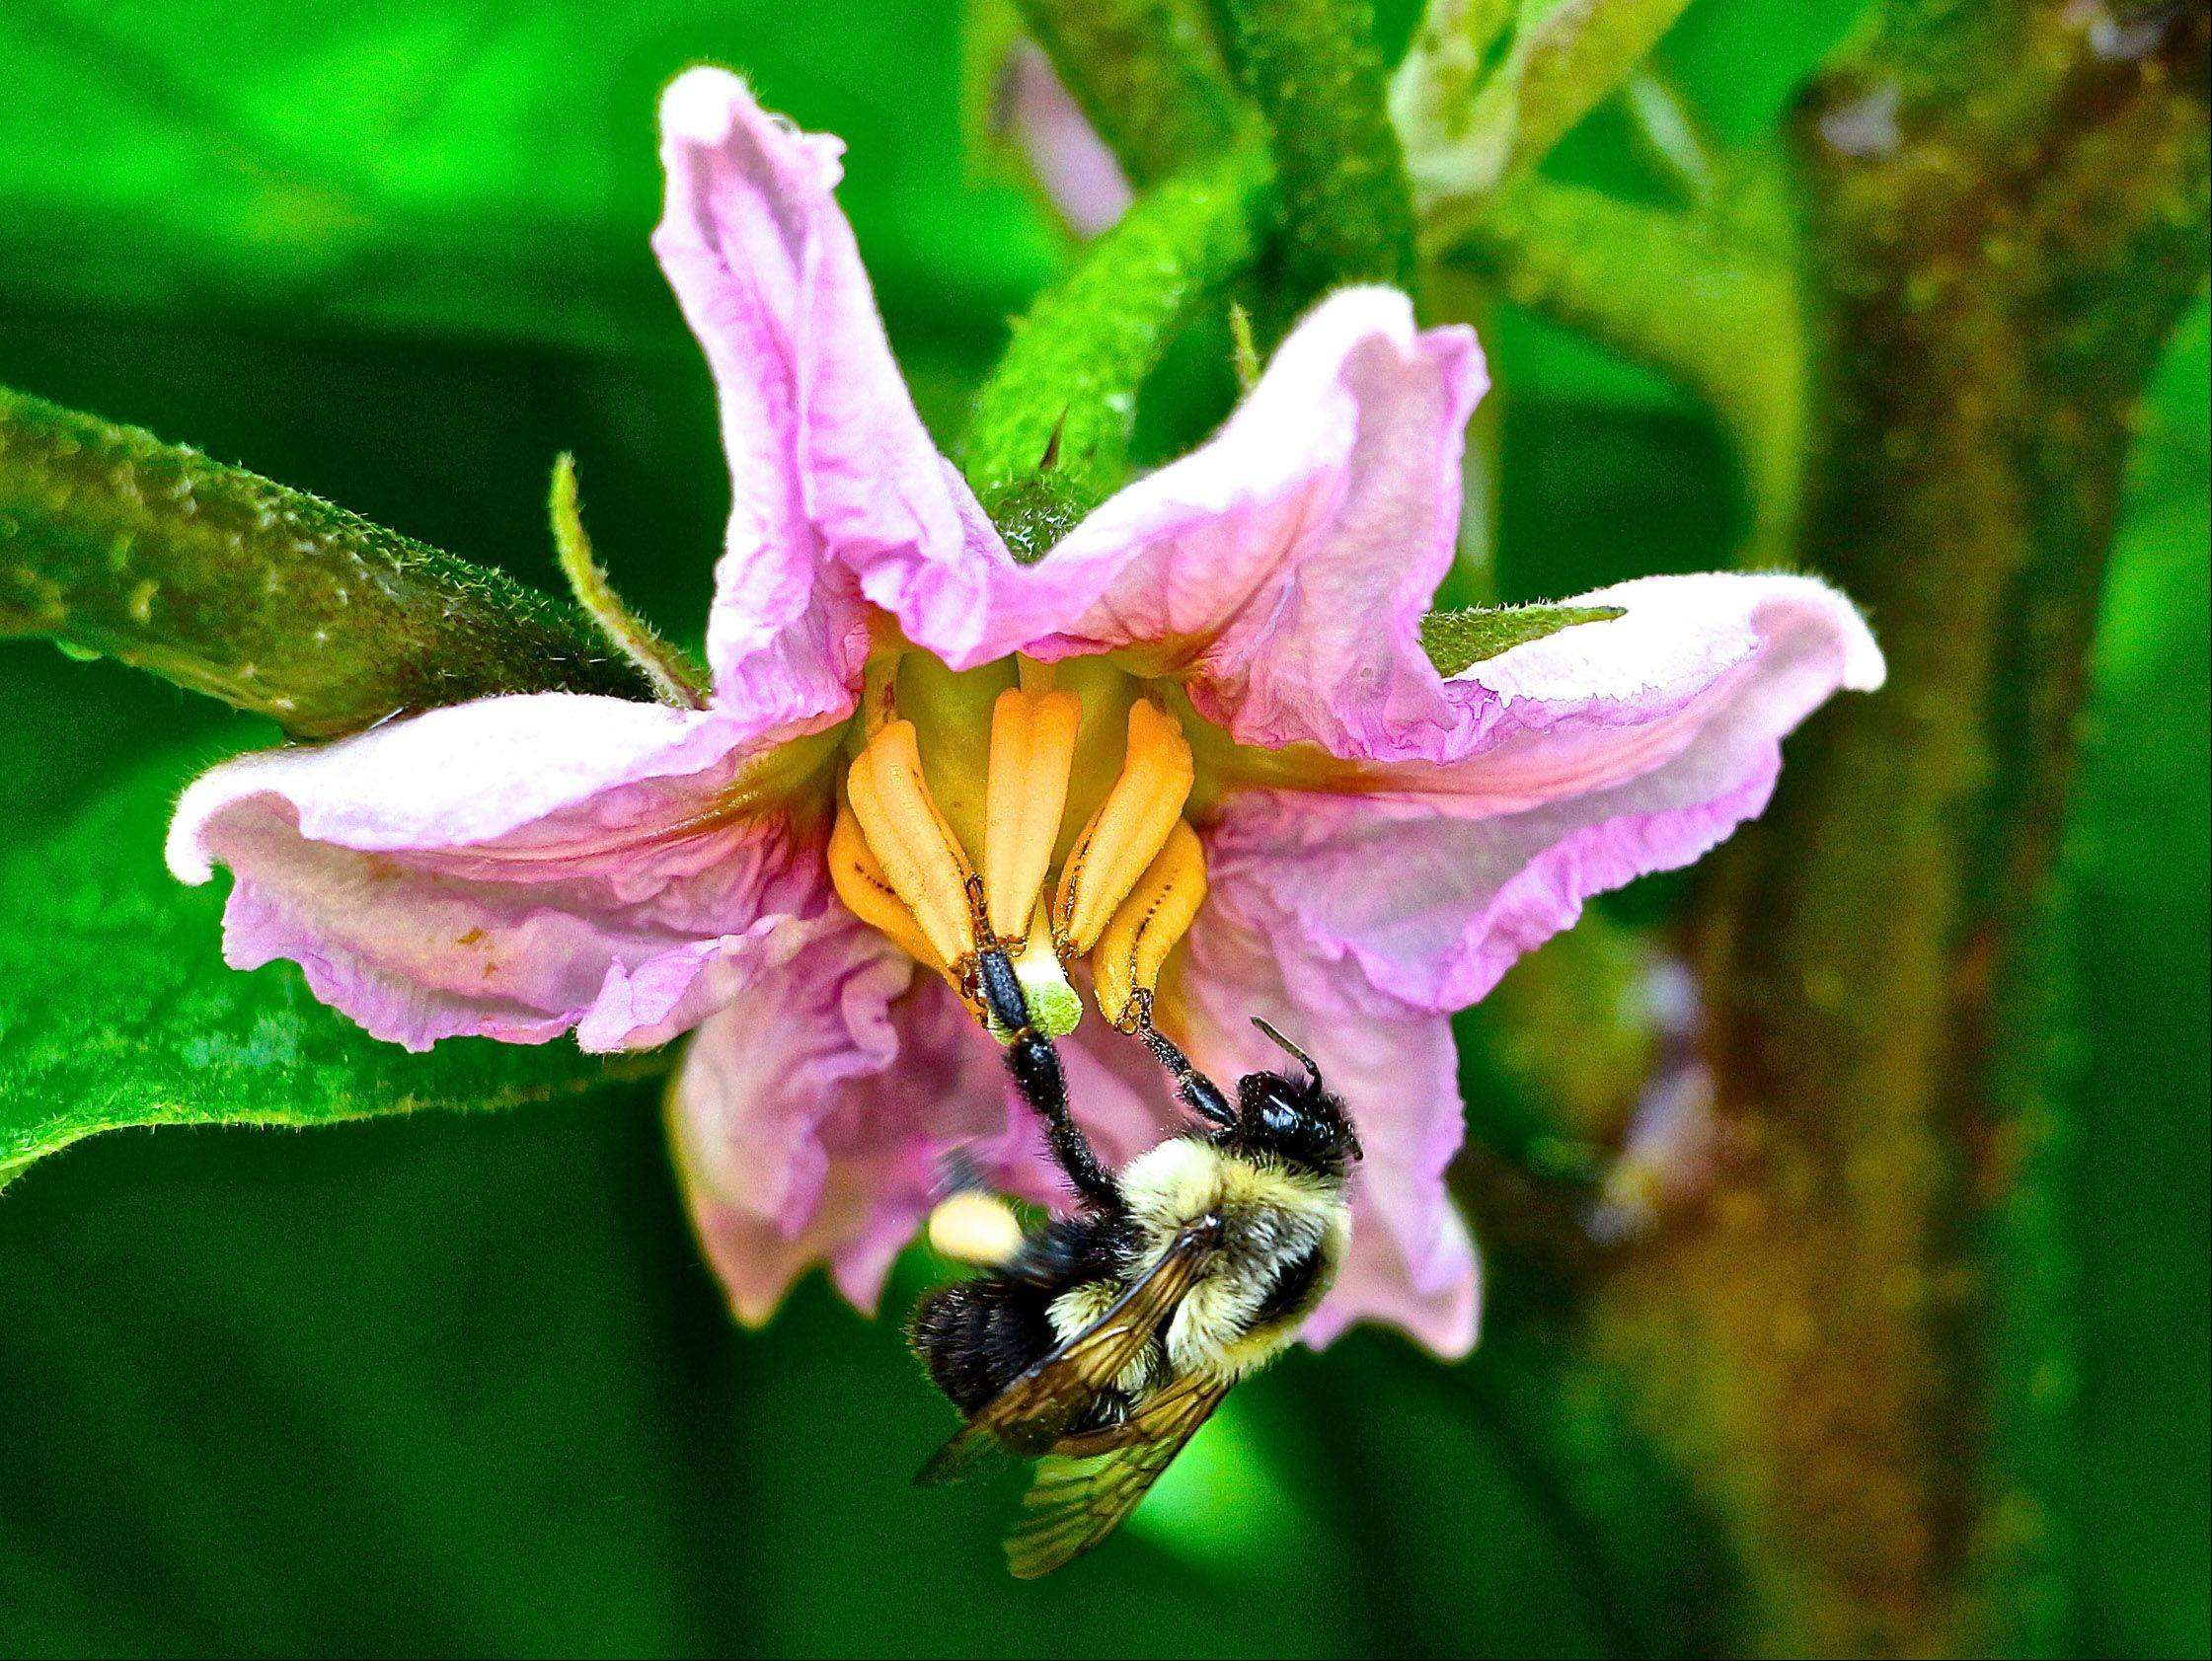 A honey bee pollinates an eggplant flower.